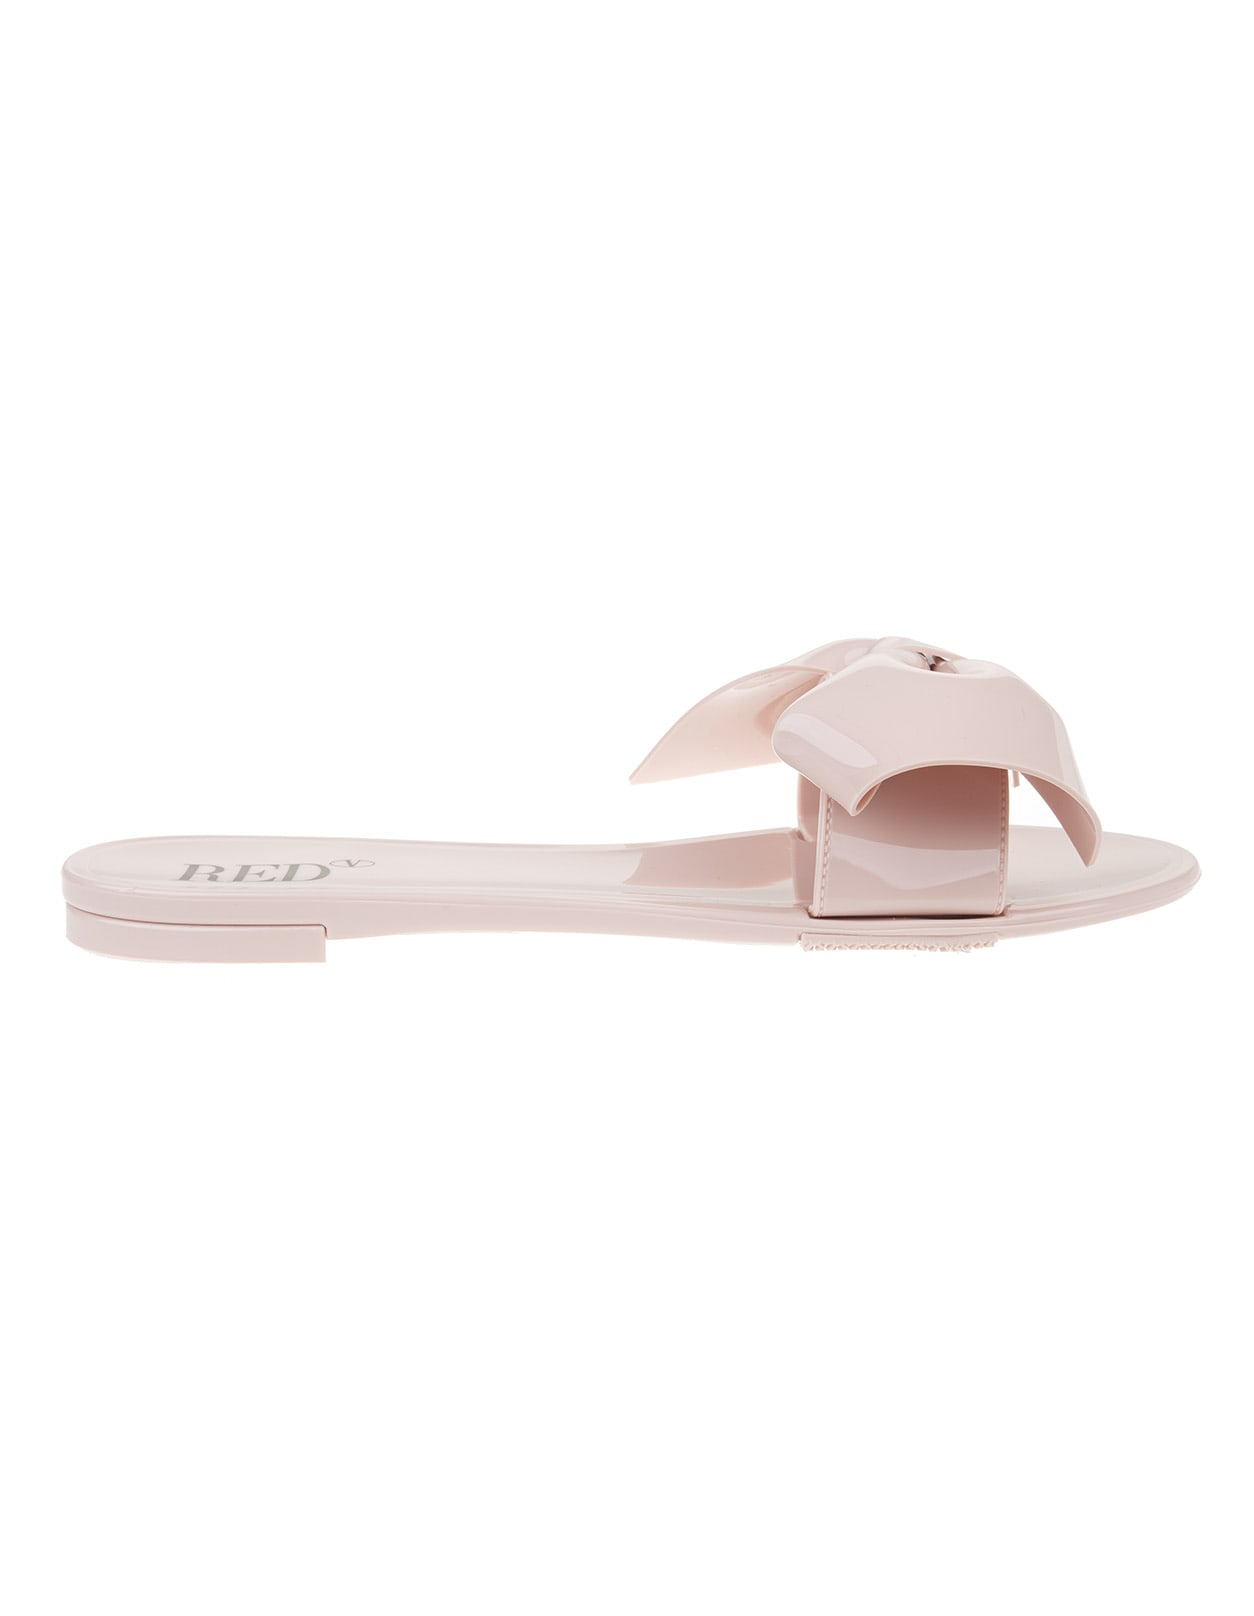 Buy RED Valentino Nude Maxi Bow Slip-on online, shop RED Valentino shoes with free shipping